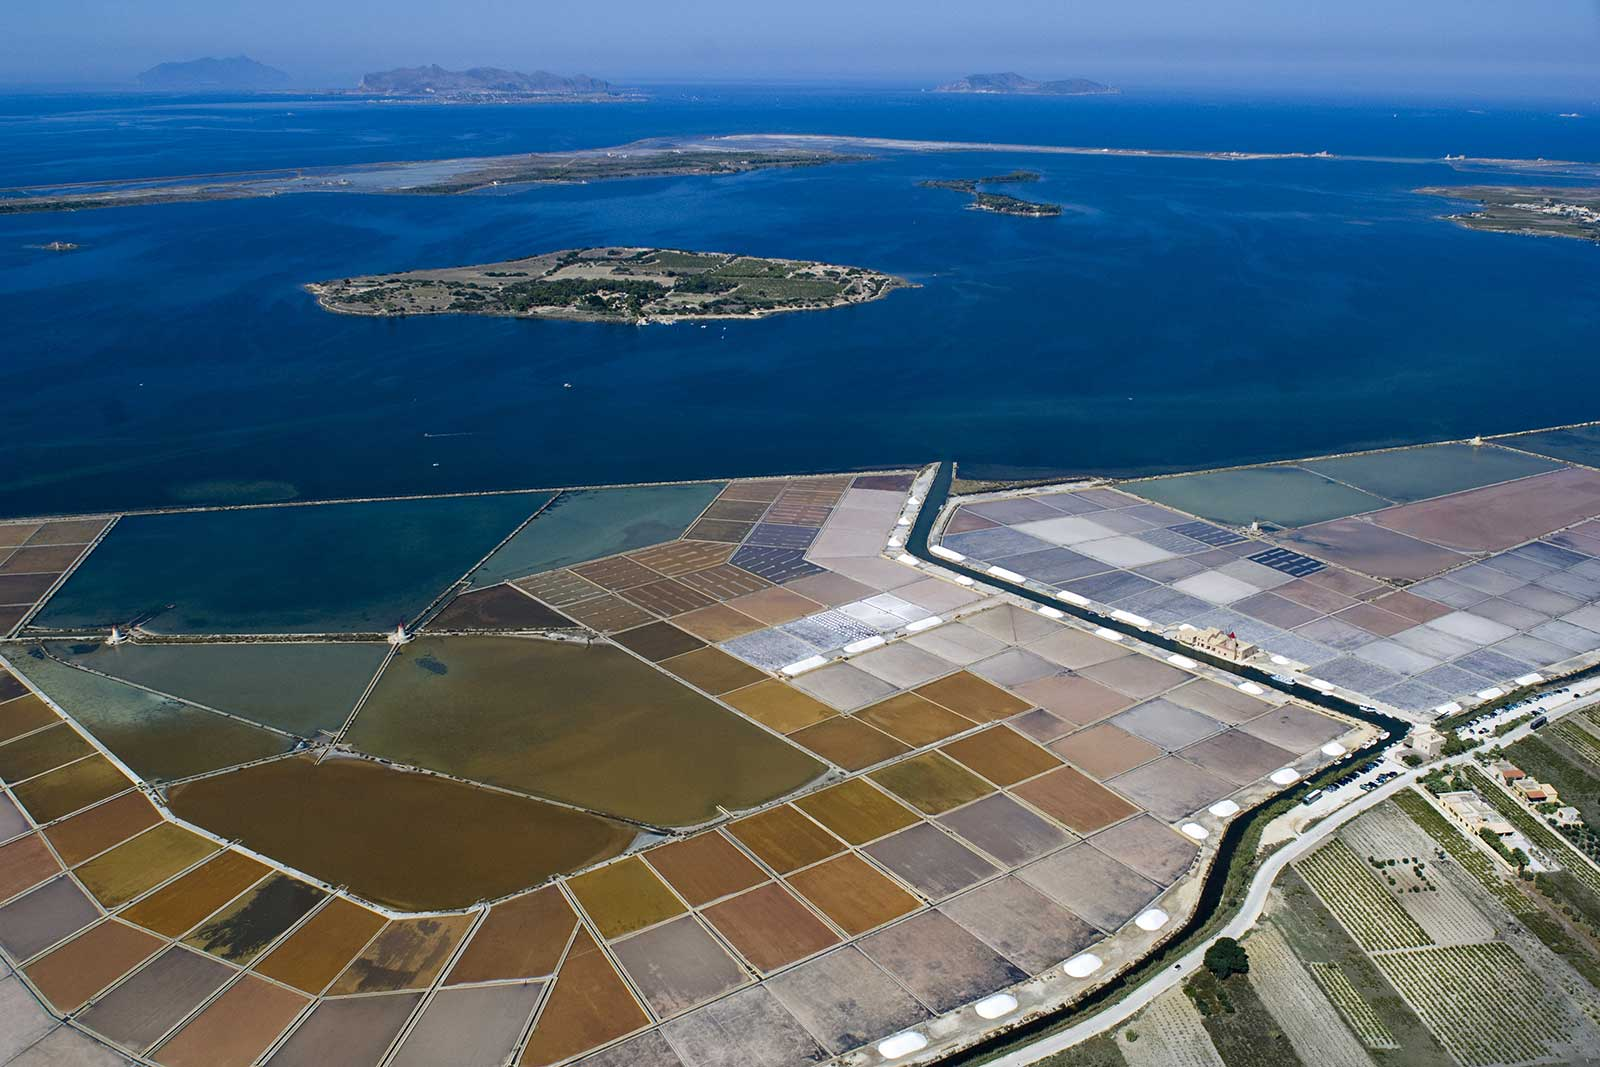 The island of Mozia is seen in the middle of the lagoon, with the famous salt pans running along the shore. Stock photo.